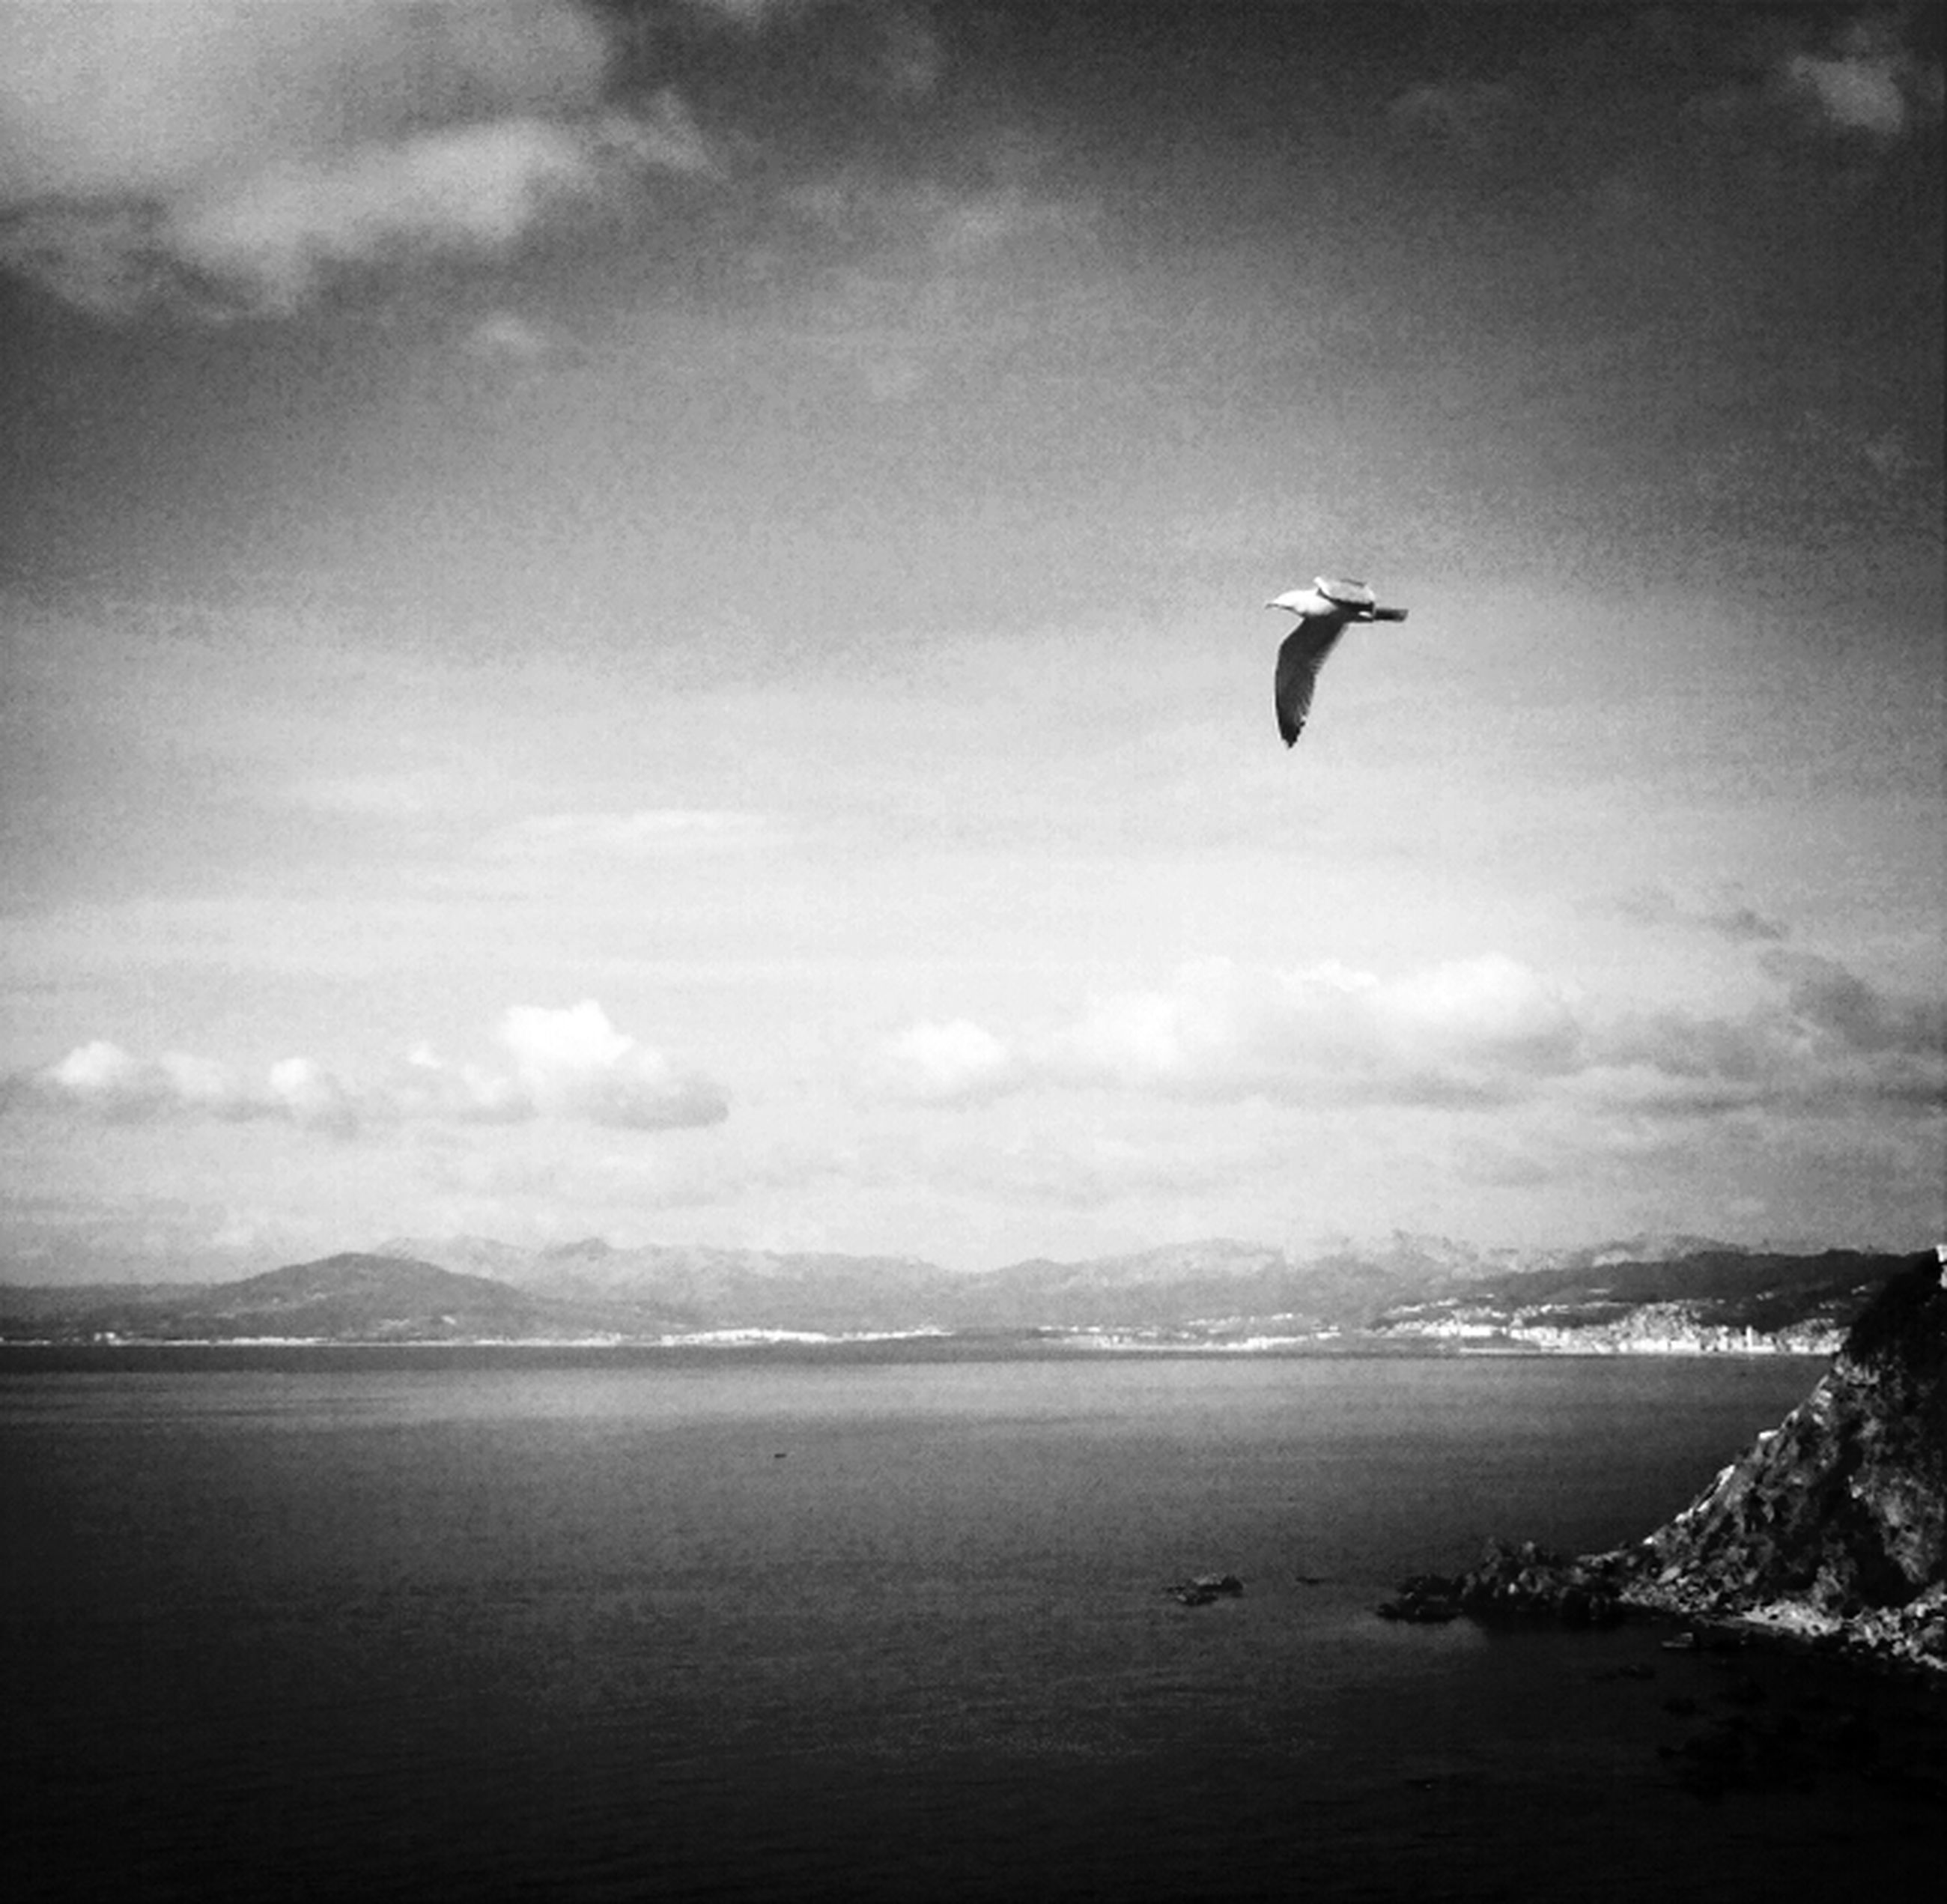 bird, flying, water, animal themes, animals in the wild, wildlife, sea, sky, one animal, waterfront, tranquility, tranquil scene, spread wings, mountain, scenics, nature, beauty in nature, cloud - sky, seagull, mid-air